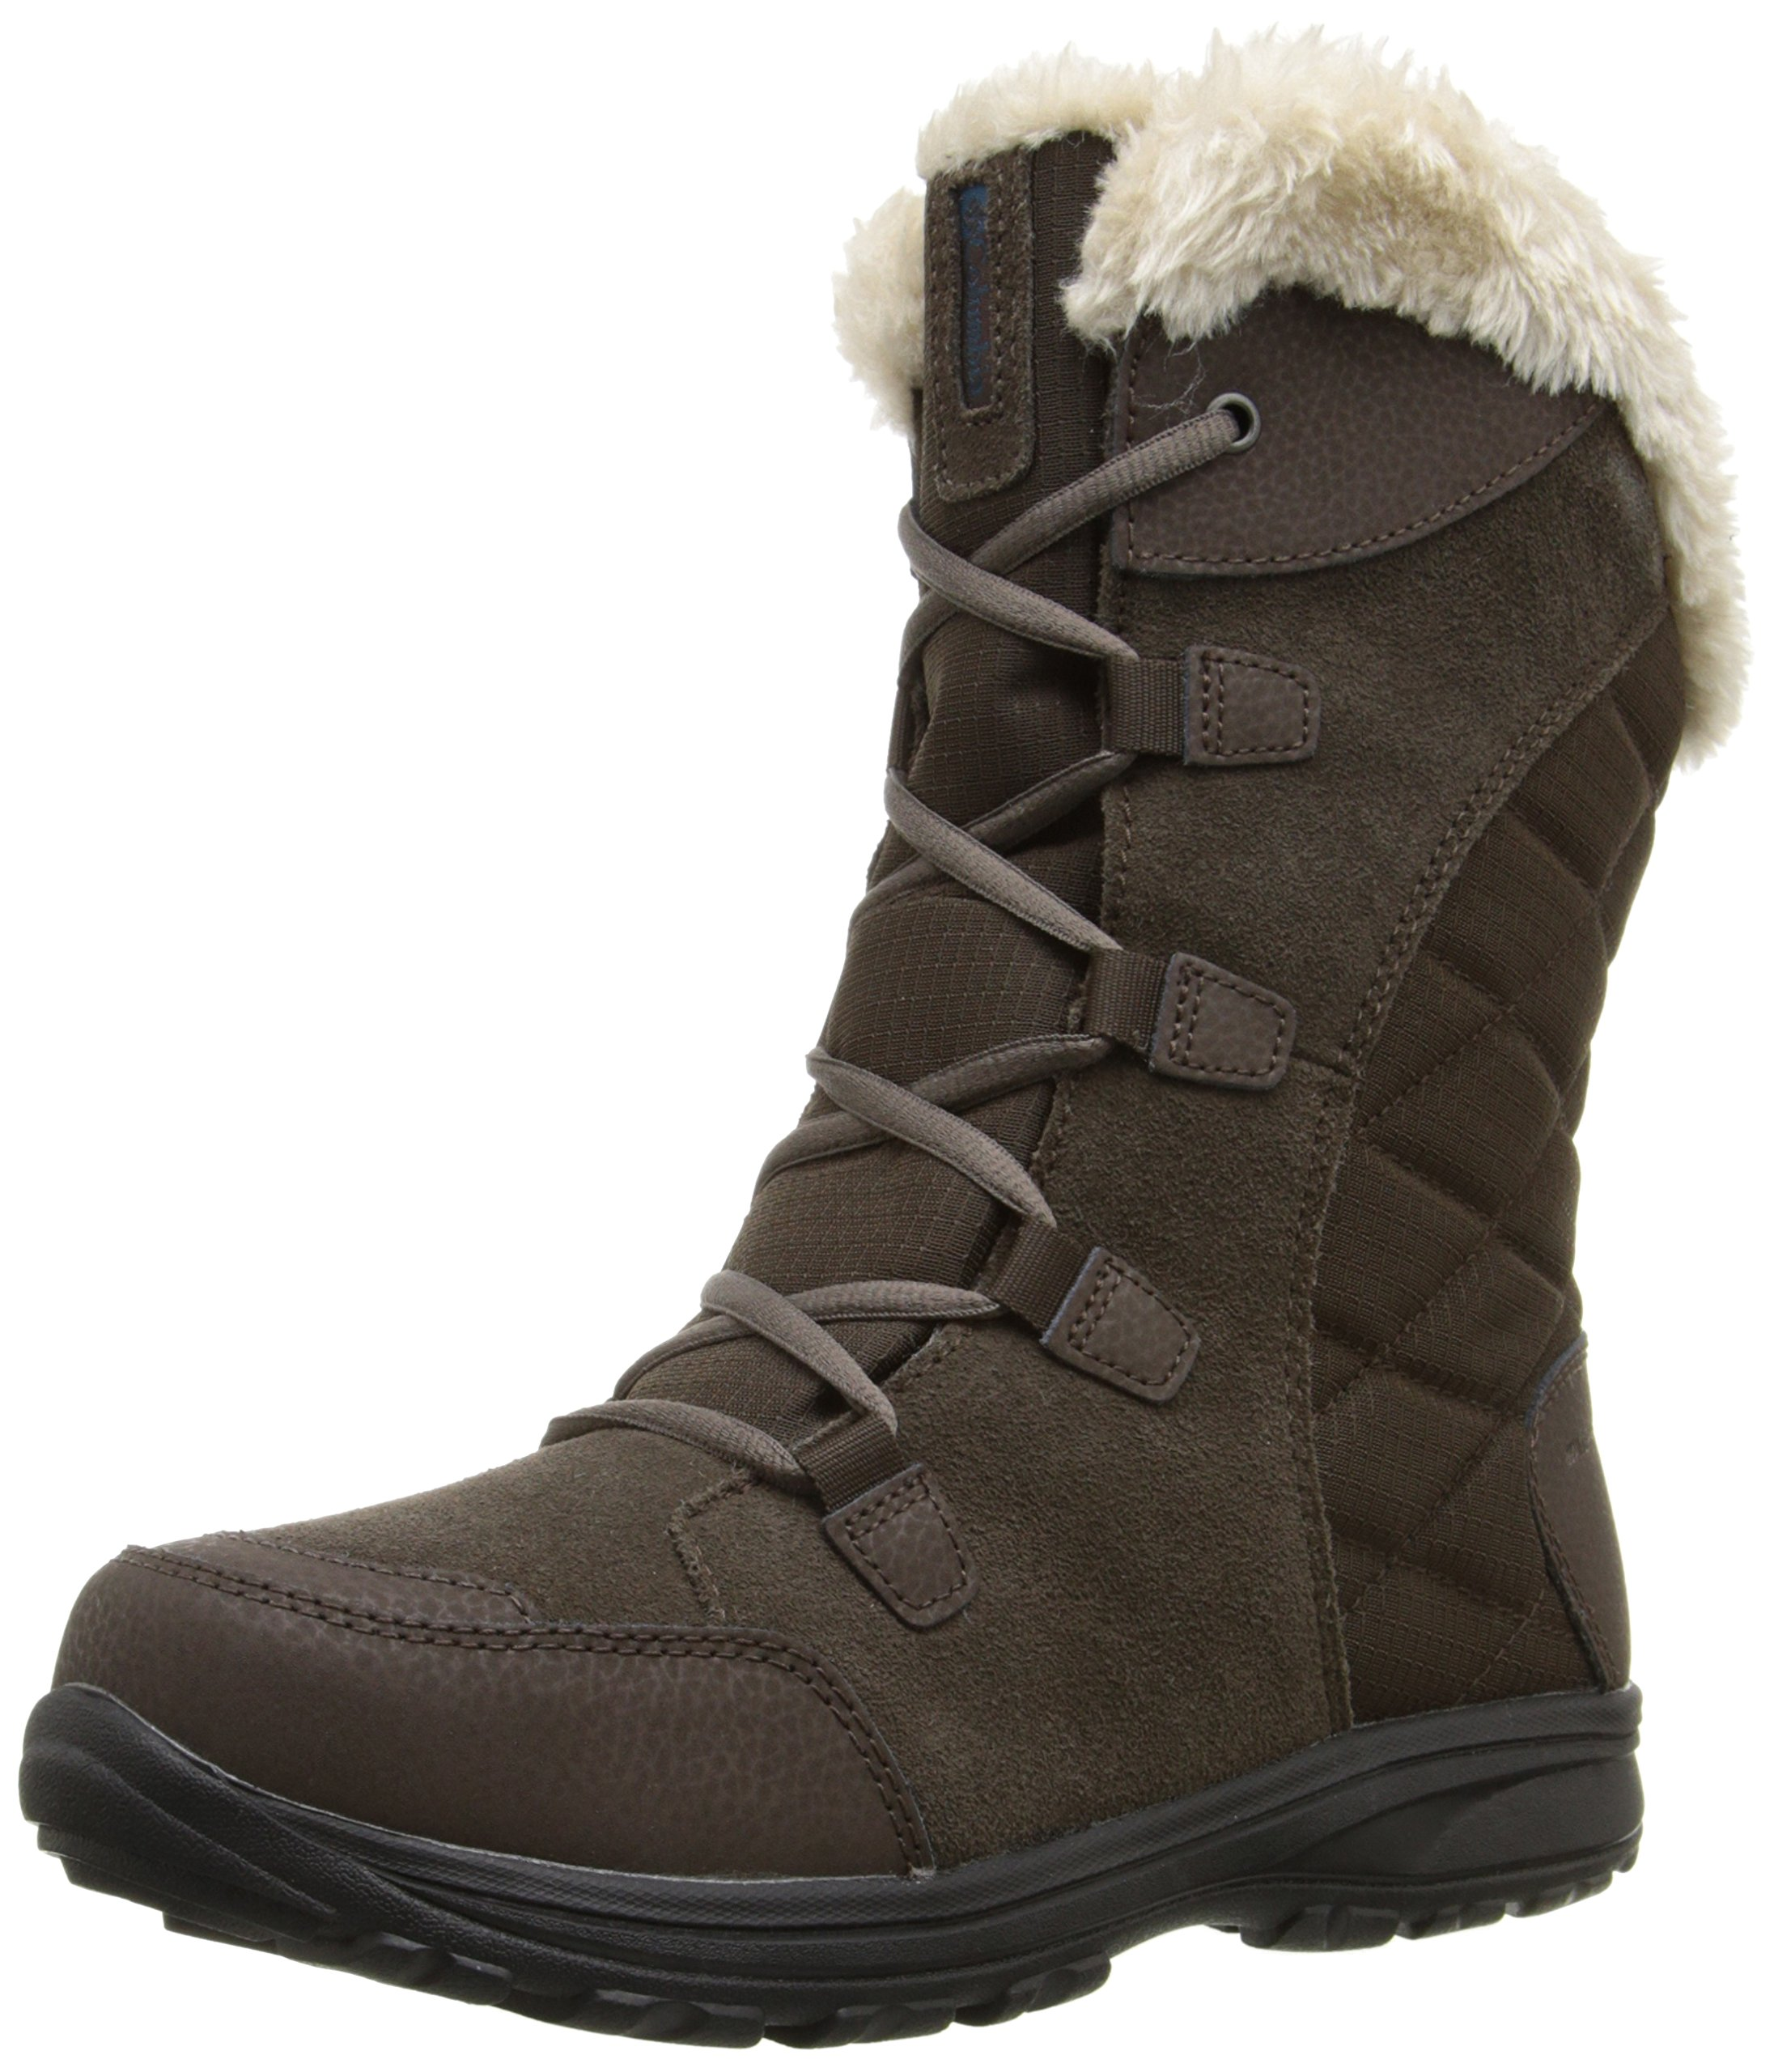 Columbia Women's Ice Maiden Ii Snow Boot, Cordovan, Siberia, 8.5 B US